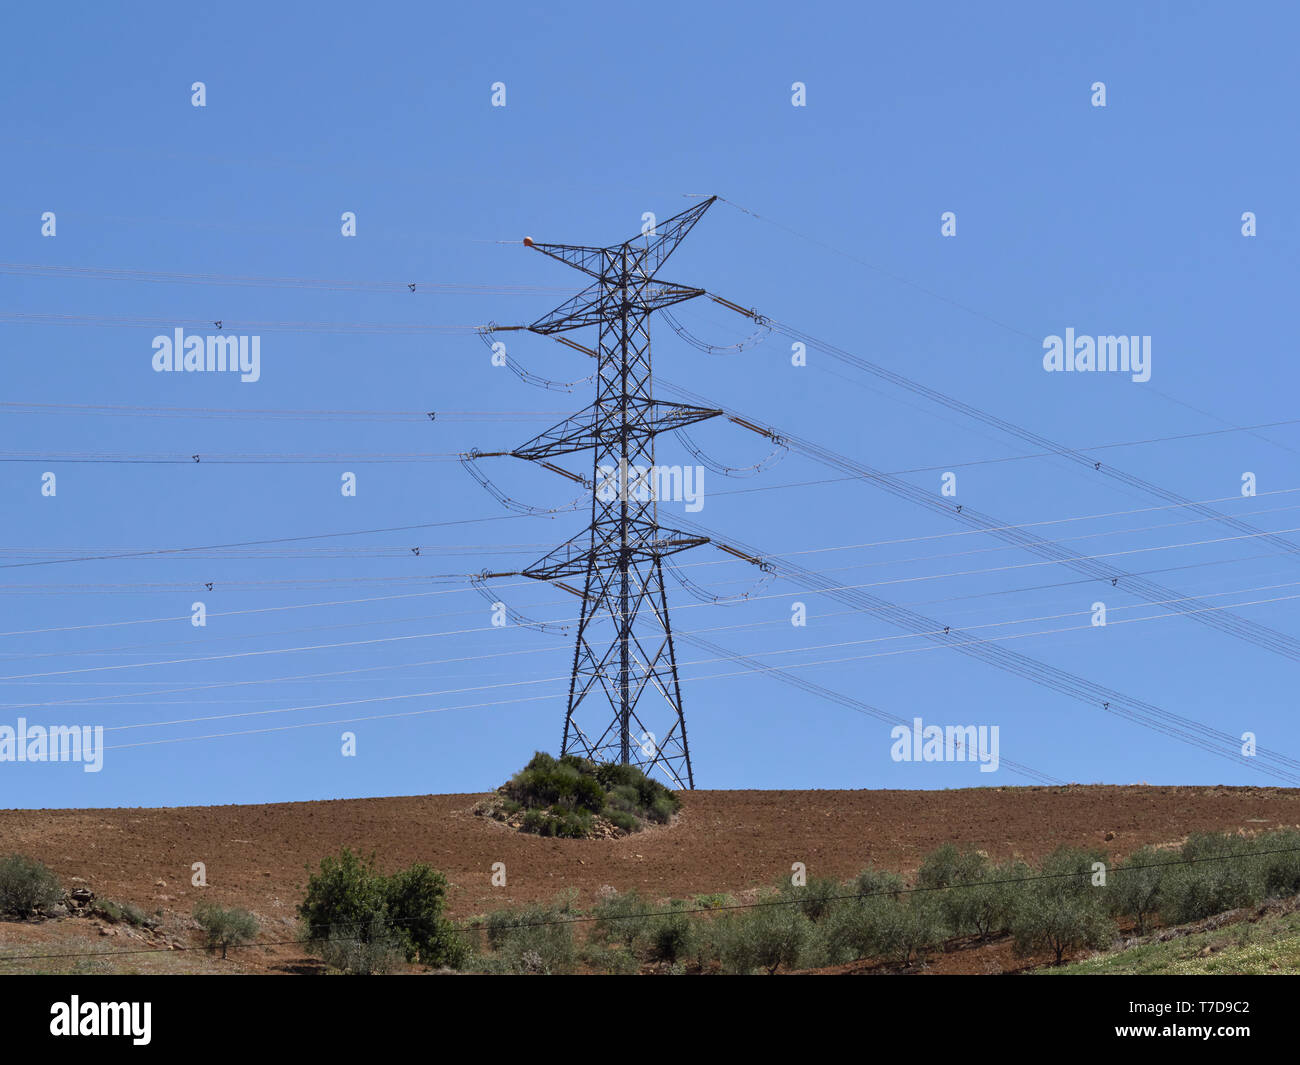 A High Voltage Electricity Transmission Pylon with its suspended overhead Cables on top of a small Hill near Alora in Andalucia in Spain. - Stock Image